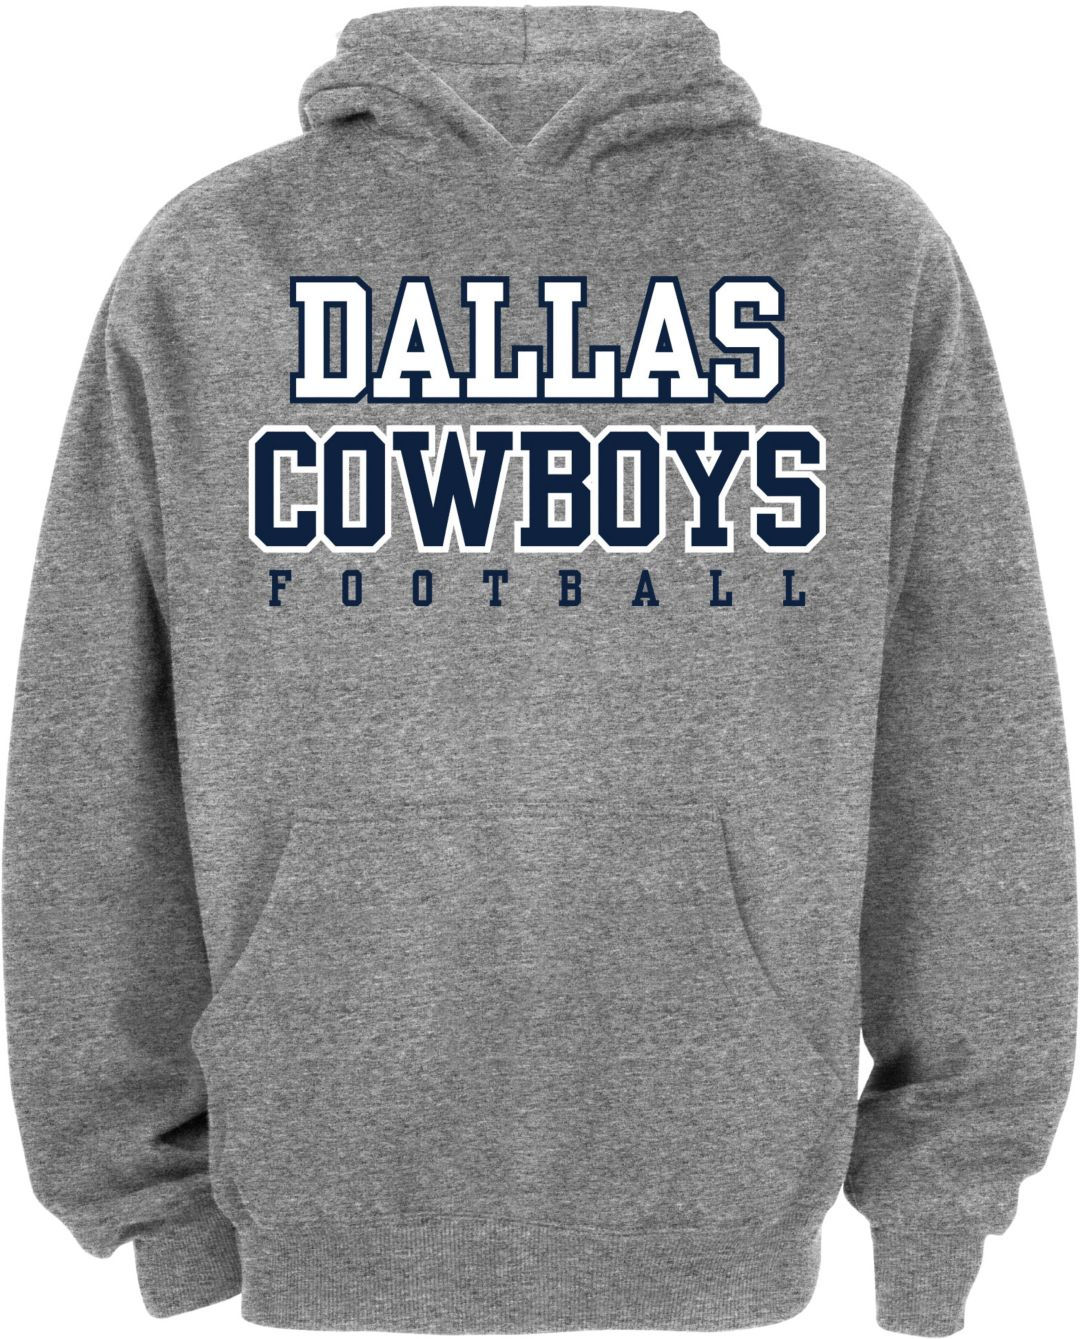 separation shoes 64c6d 4025e Dallas Cowboys Merchandising Youth Grey Practice Hoodie